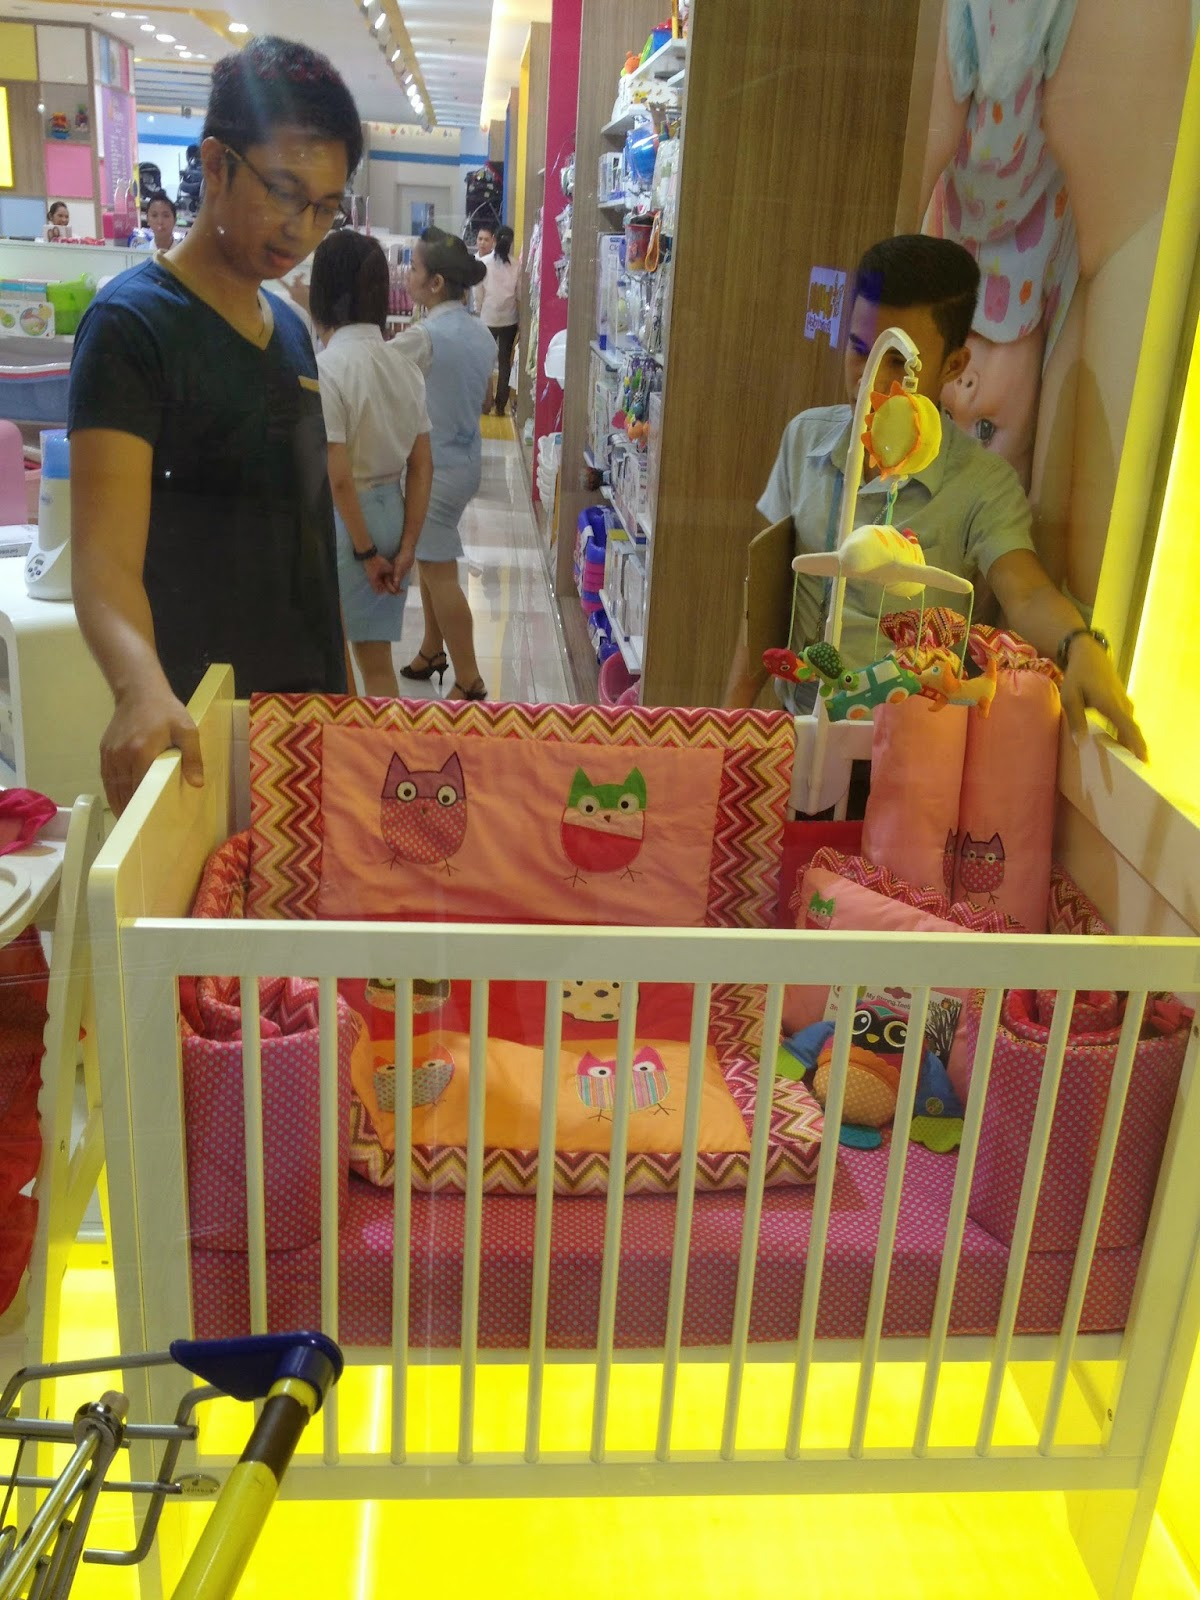 Baby crib for sale at sm department store - But We Did Thought Of Getting A Good Baby Mattress Because I Was Used To Sleeping On The Floor With Just A Mattress Elevated On The Floor Ever Since I Was